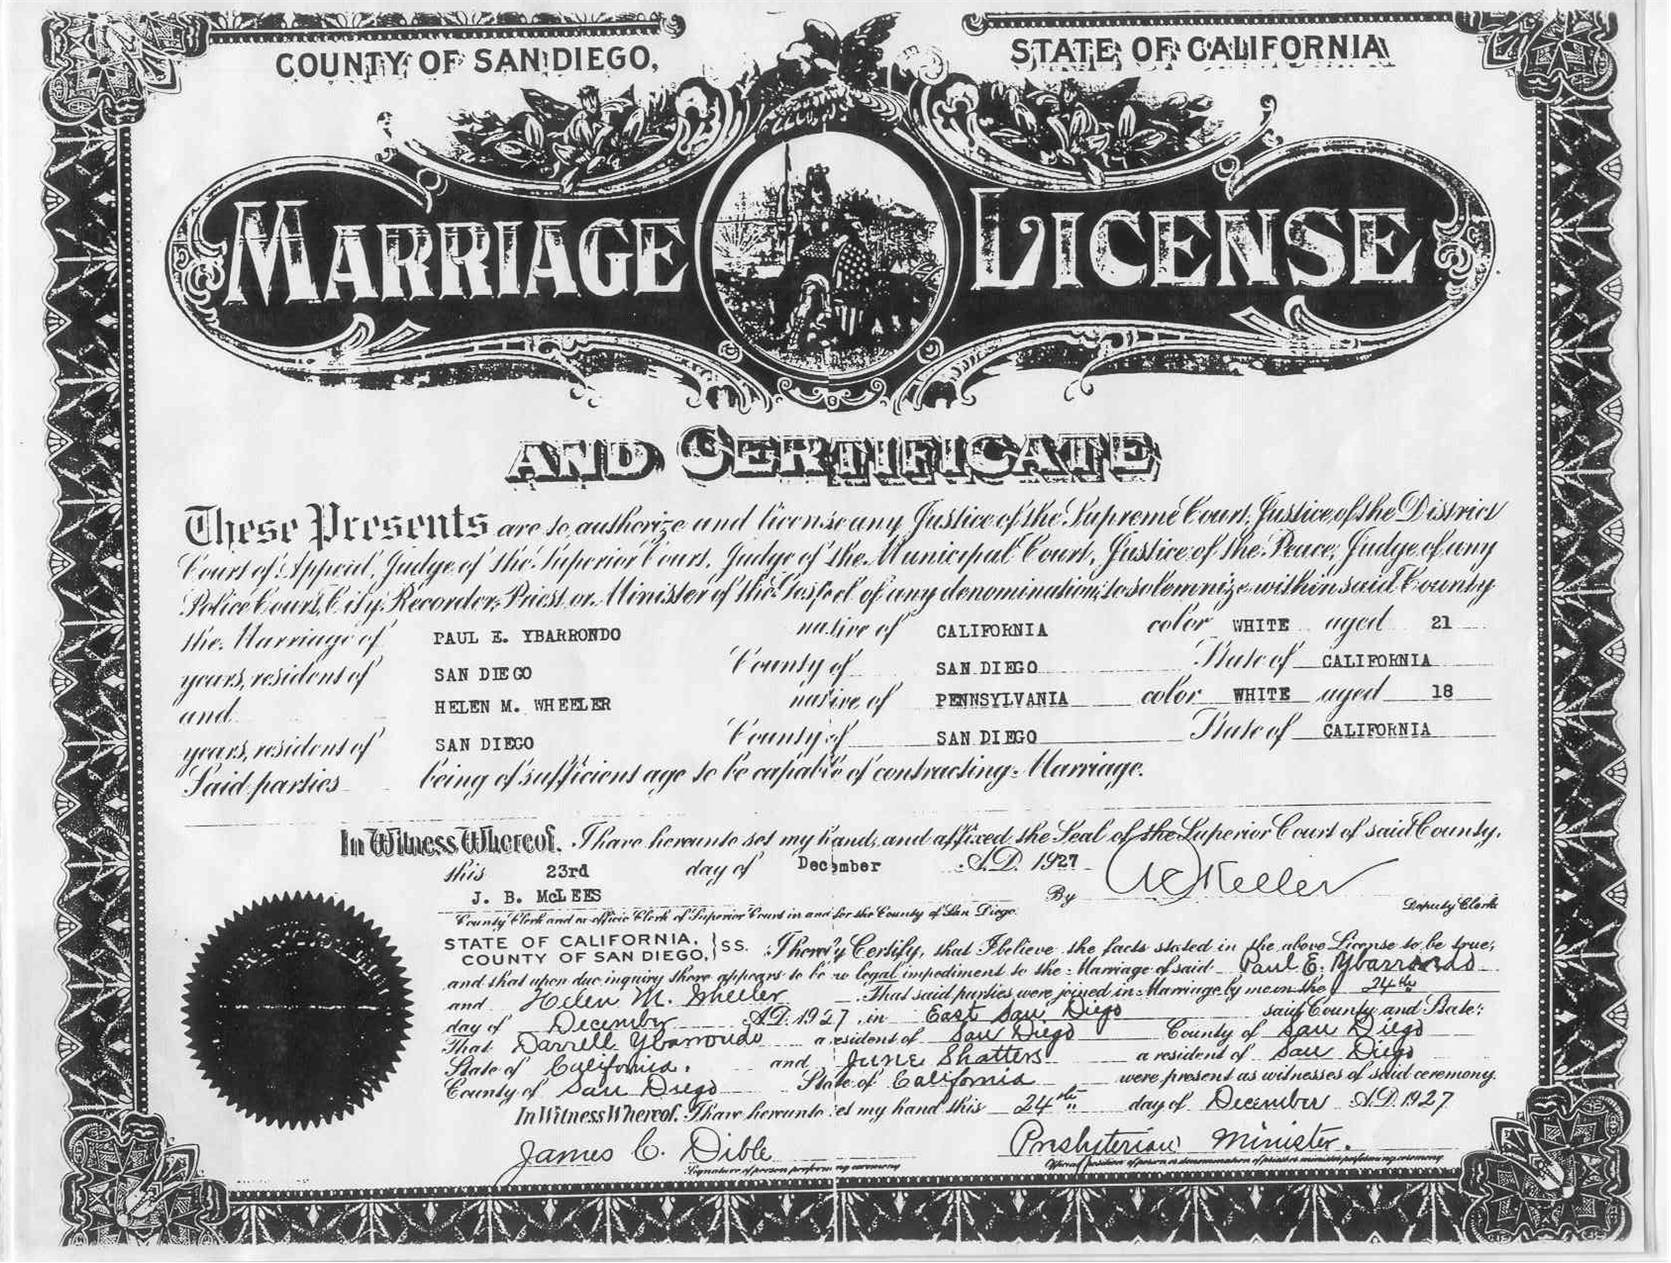 Documents ybarrondo paul and helen de marriage certificate 1927 click and drag to move within the image 1betcityfo Gallery